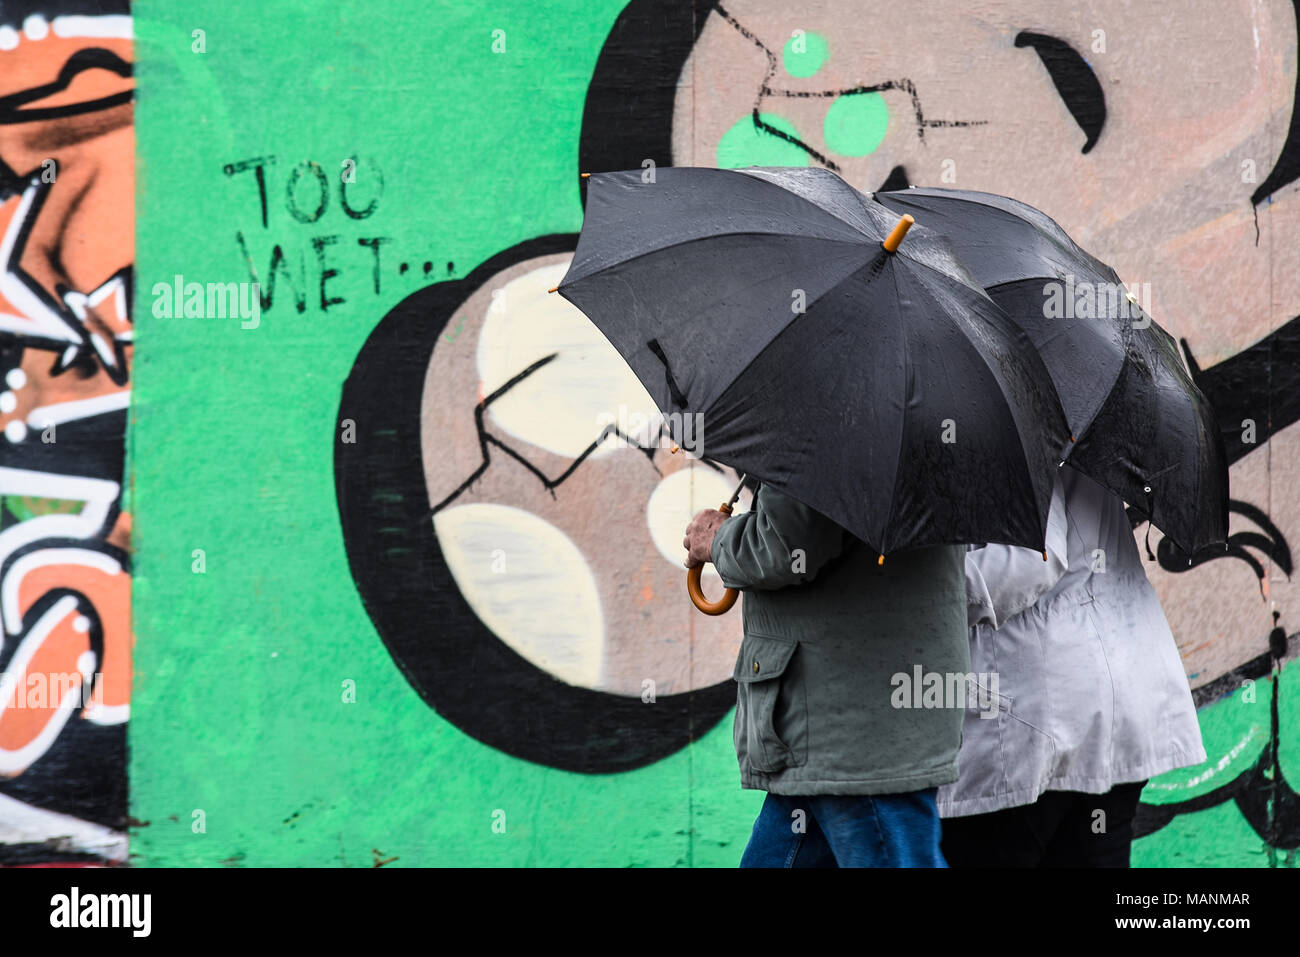 too-wet-bank-holiday-weather-in-southend-on-sea-essex-uk-couple-with-umbrellas-in-the-rain-walking-past-graffiti-wall-with-too-wet-for-literal-use-MANMAR.jpg